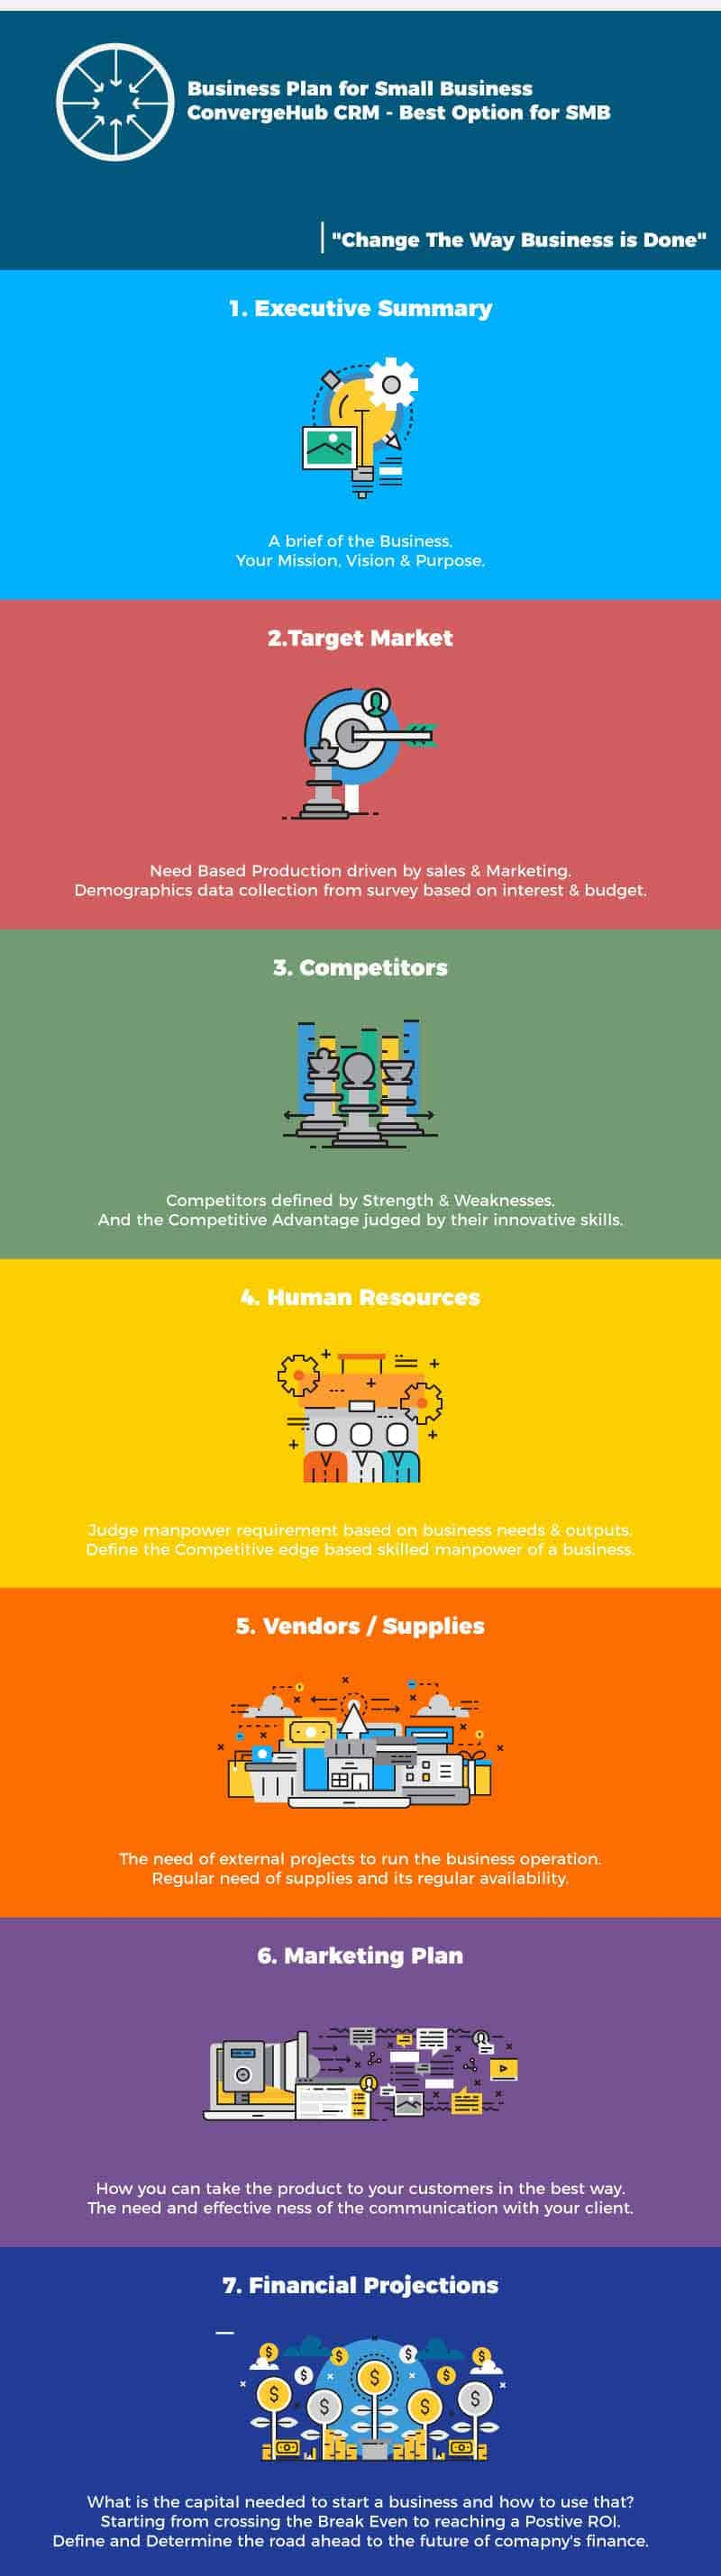 Business plan for the small business